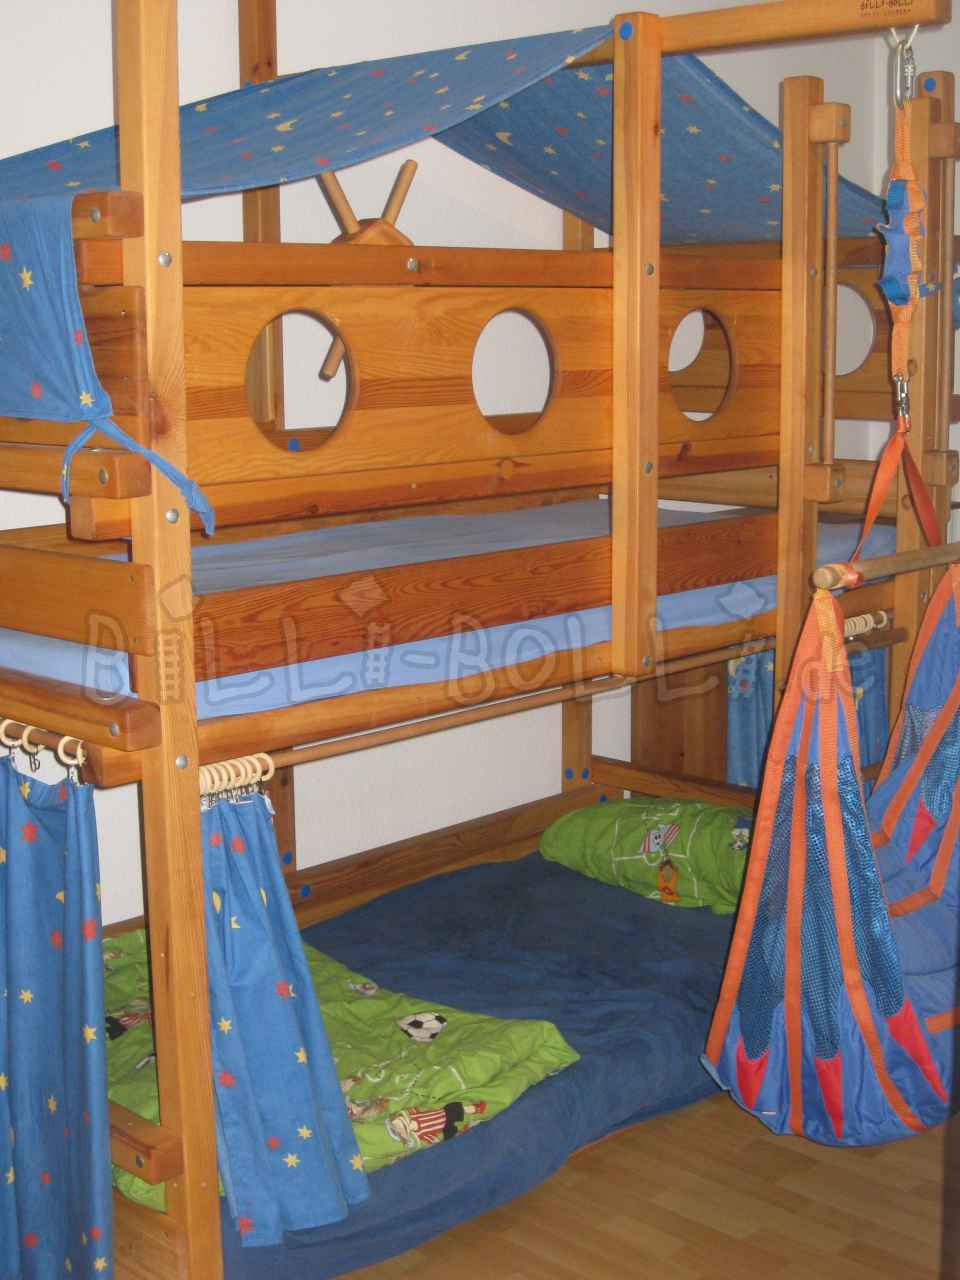 Billi-Bolli bunk bed, pine, honey-coloured oiled, 90 x 200 cm (second hand loft bed)